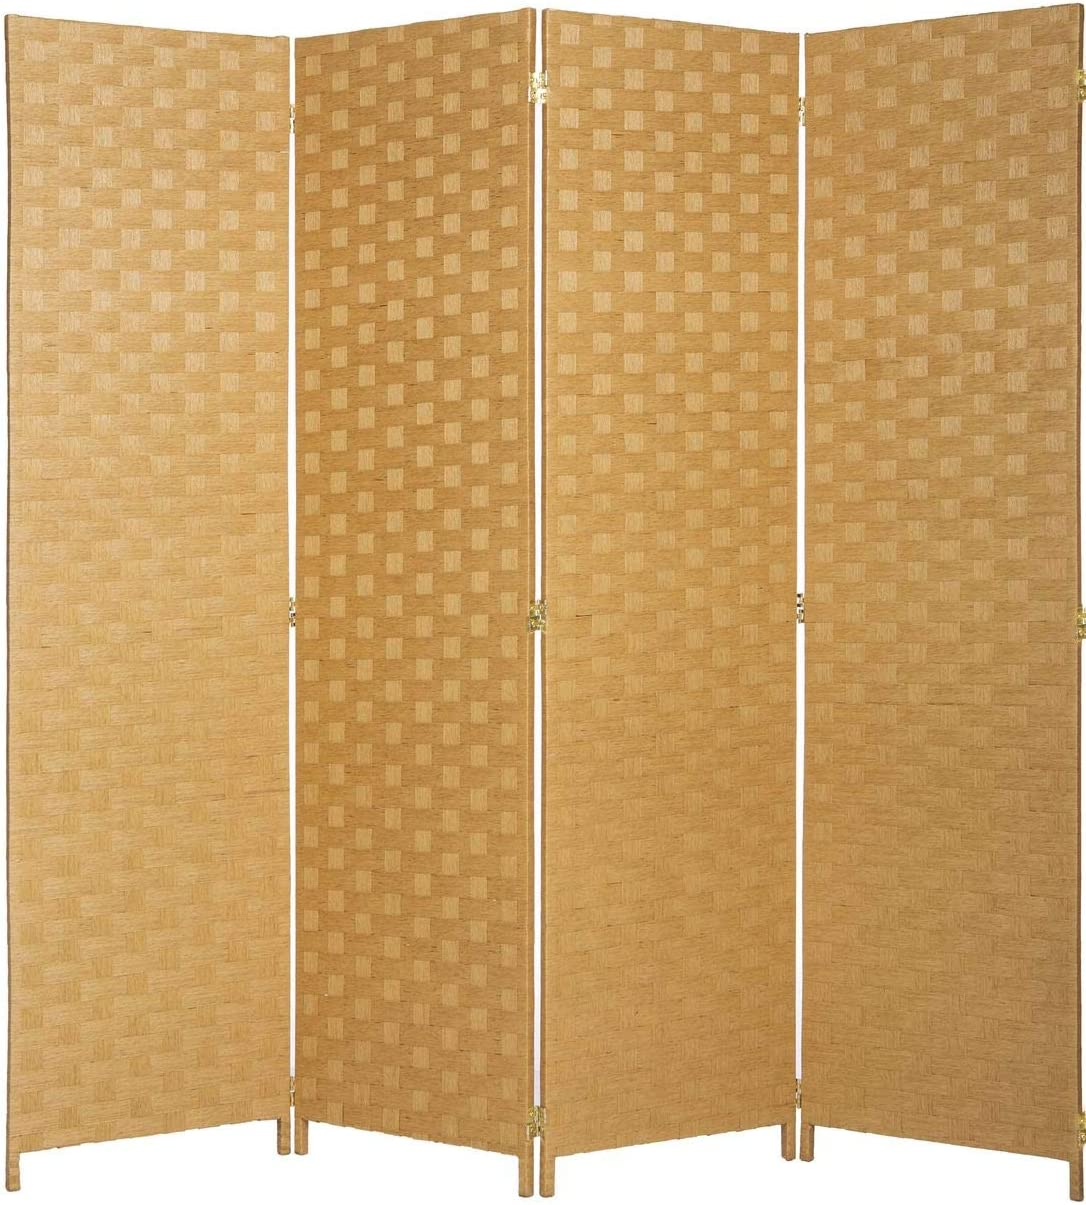 Privacy Partition Screen Legacy Decor Bamboo Woven Panel Room Divider 4 Panel Beige Color